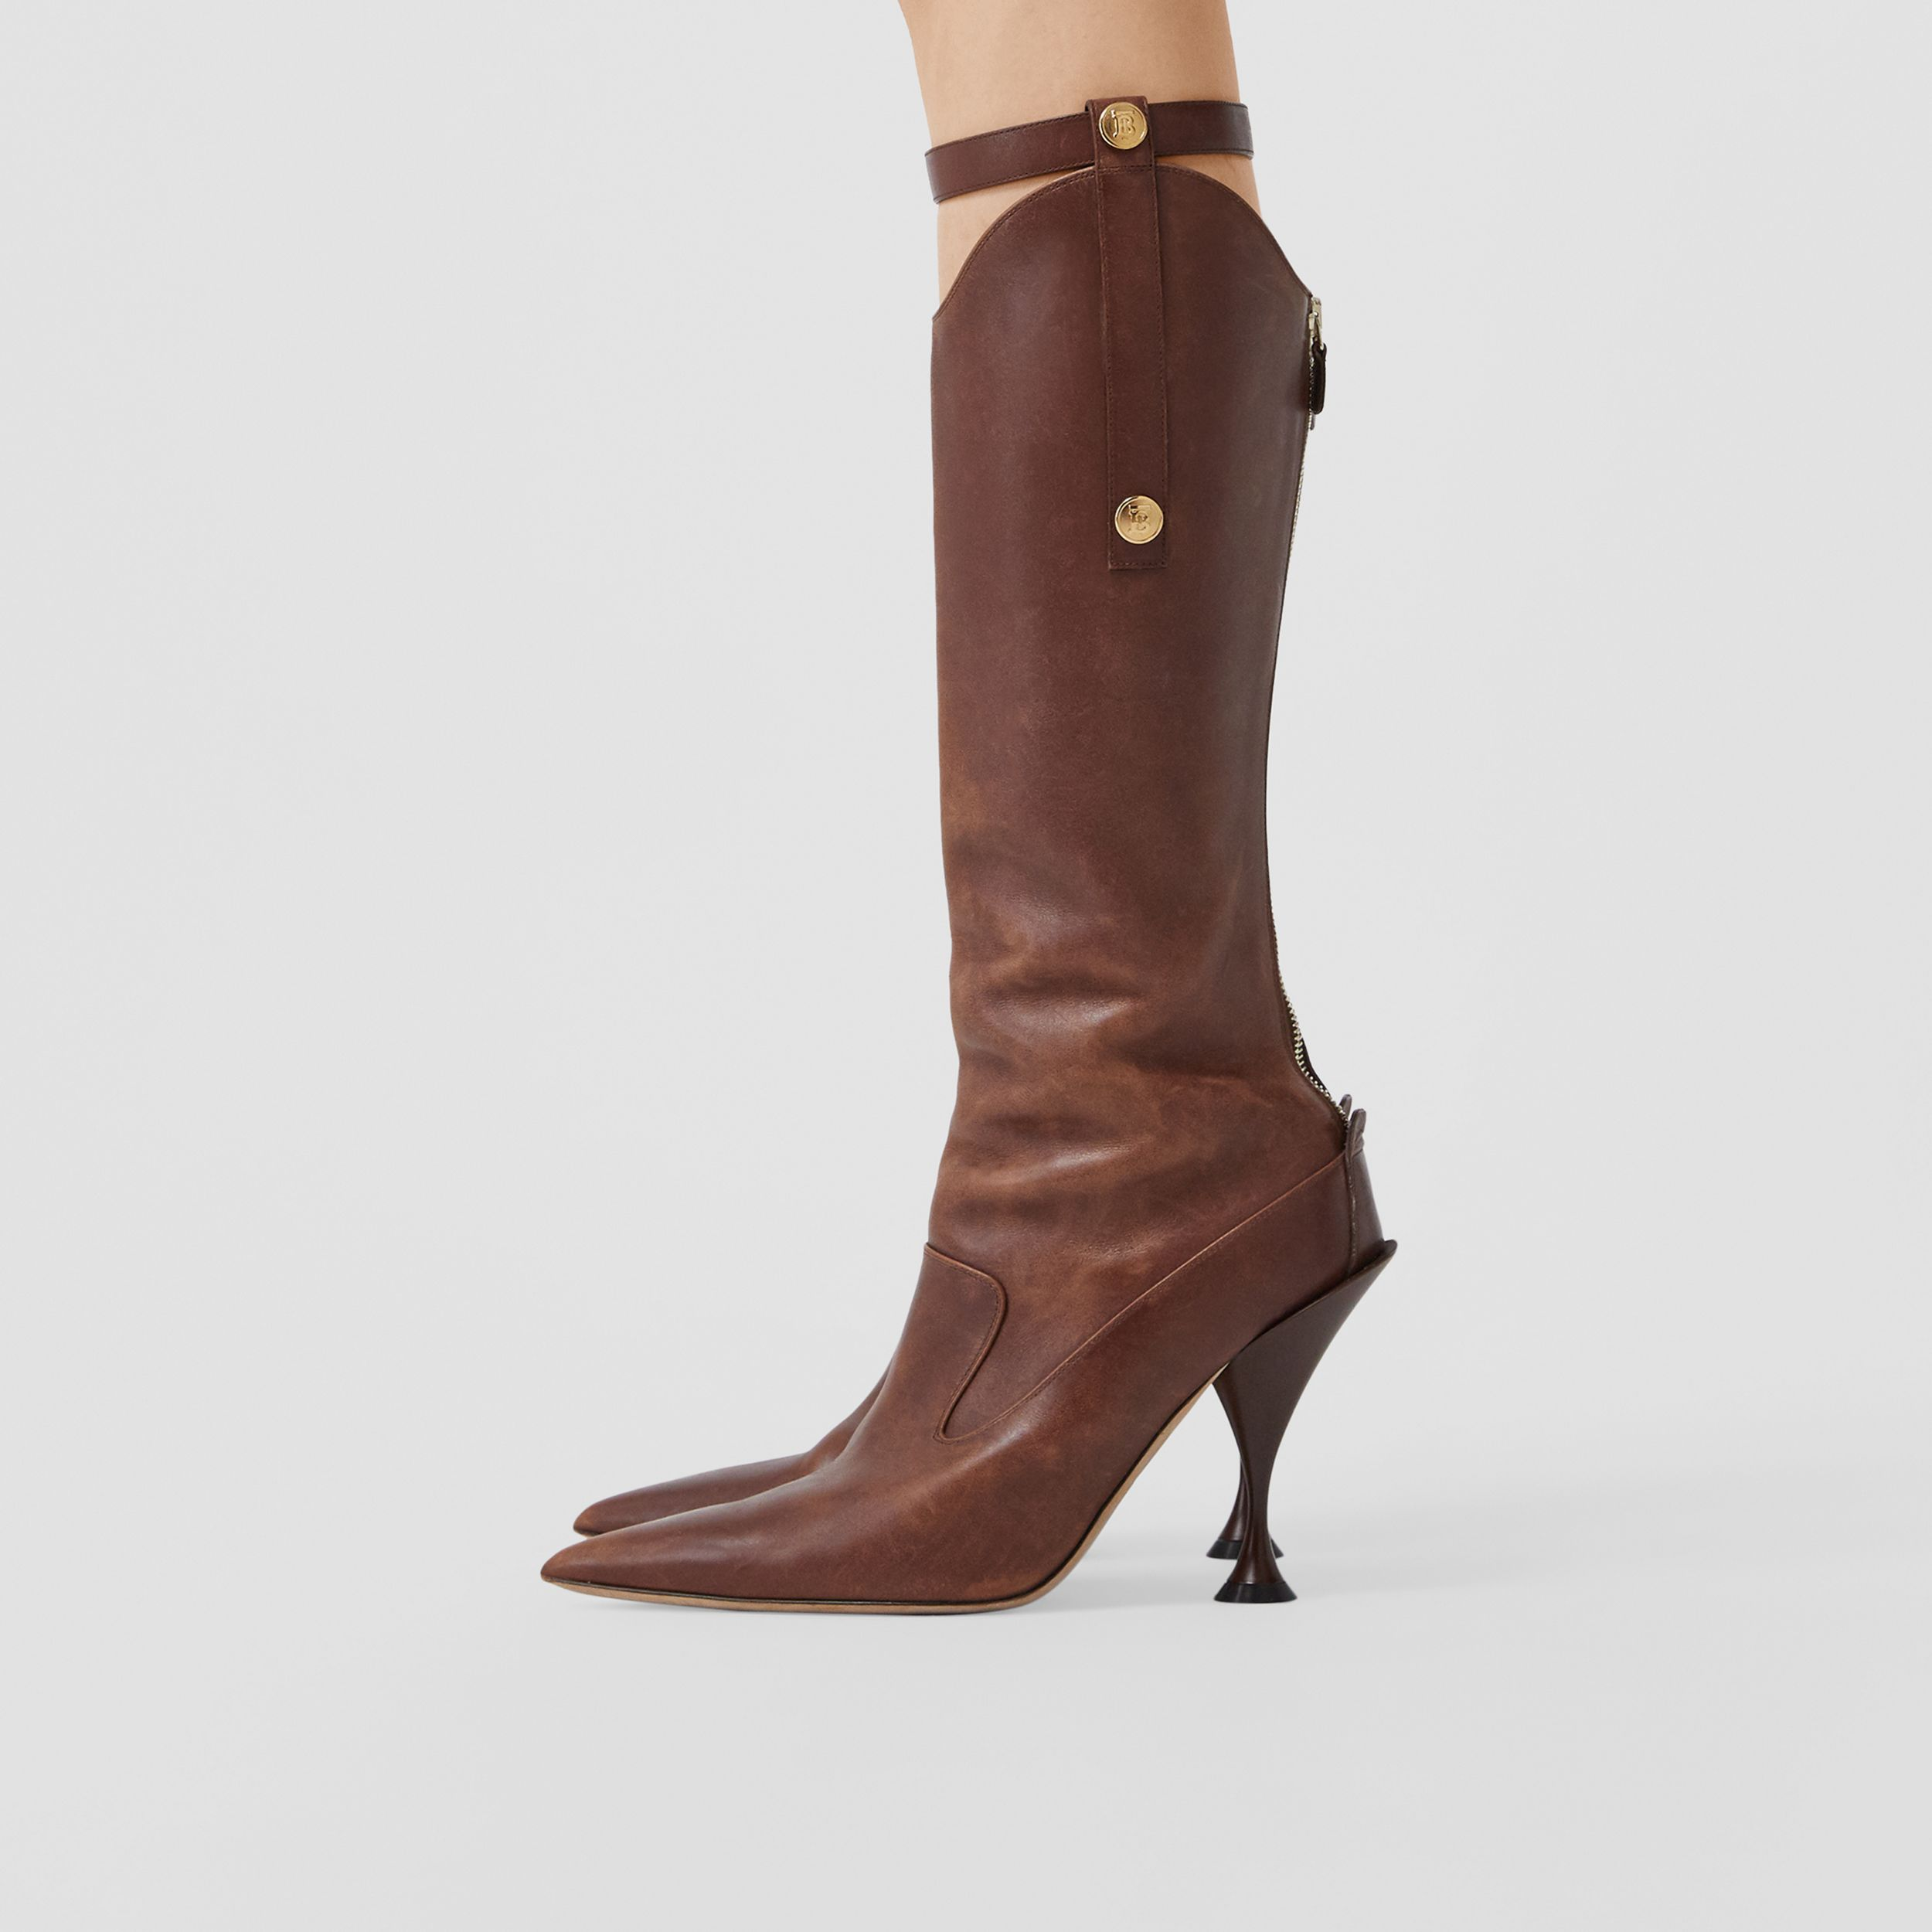 Monogram Motif Stud Detail Leather Boots in Dark Mocha - Women | Burberry United States - 3